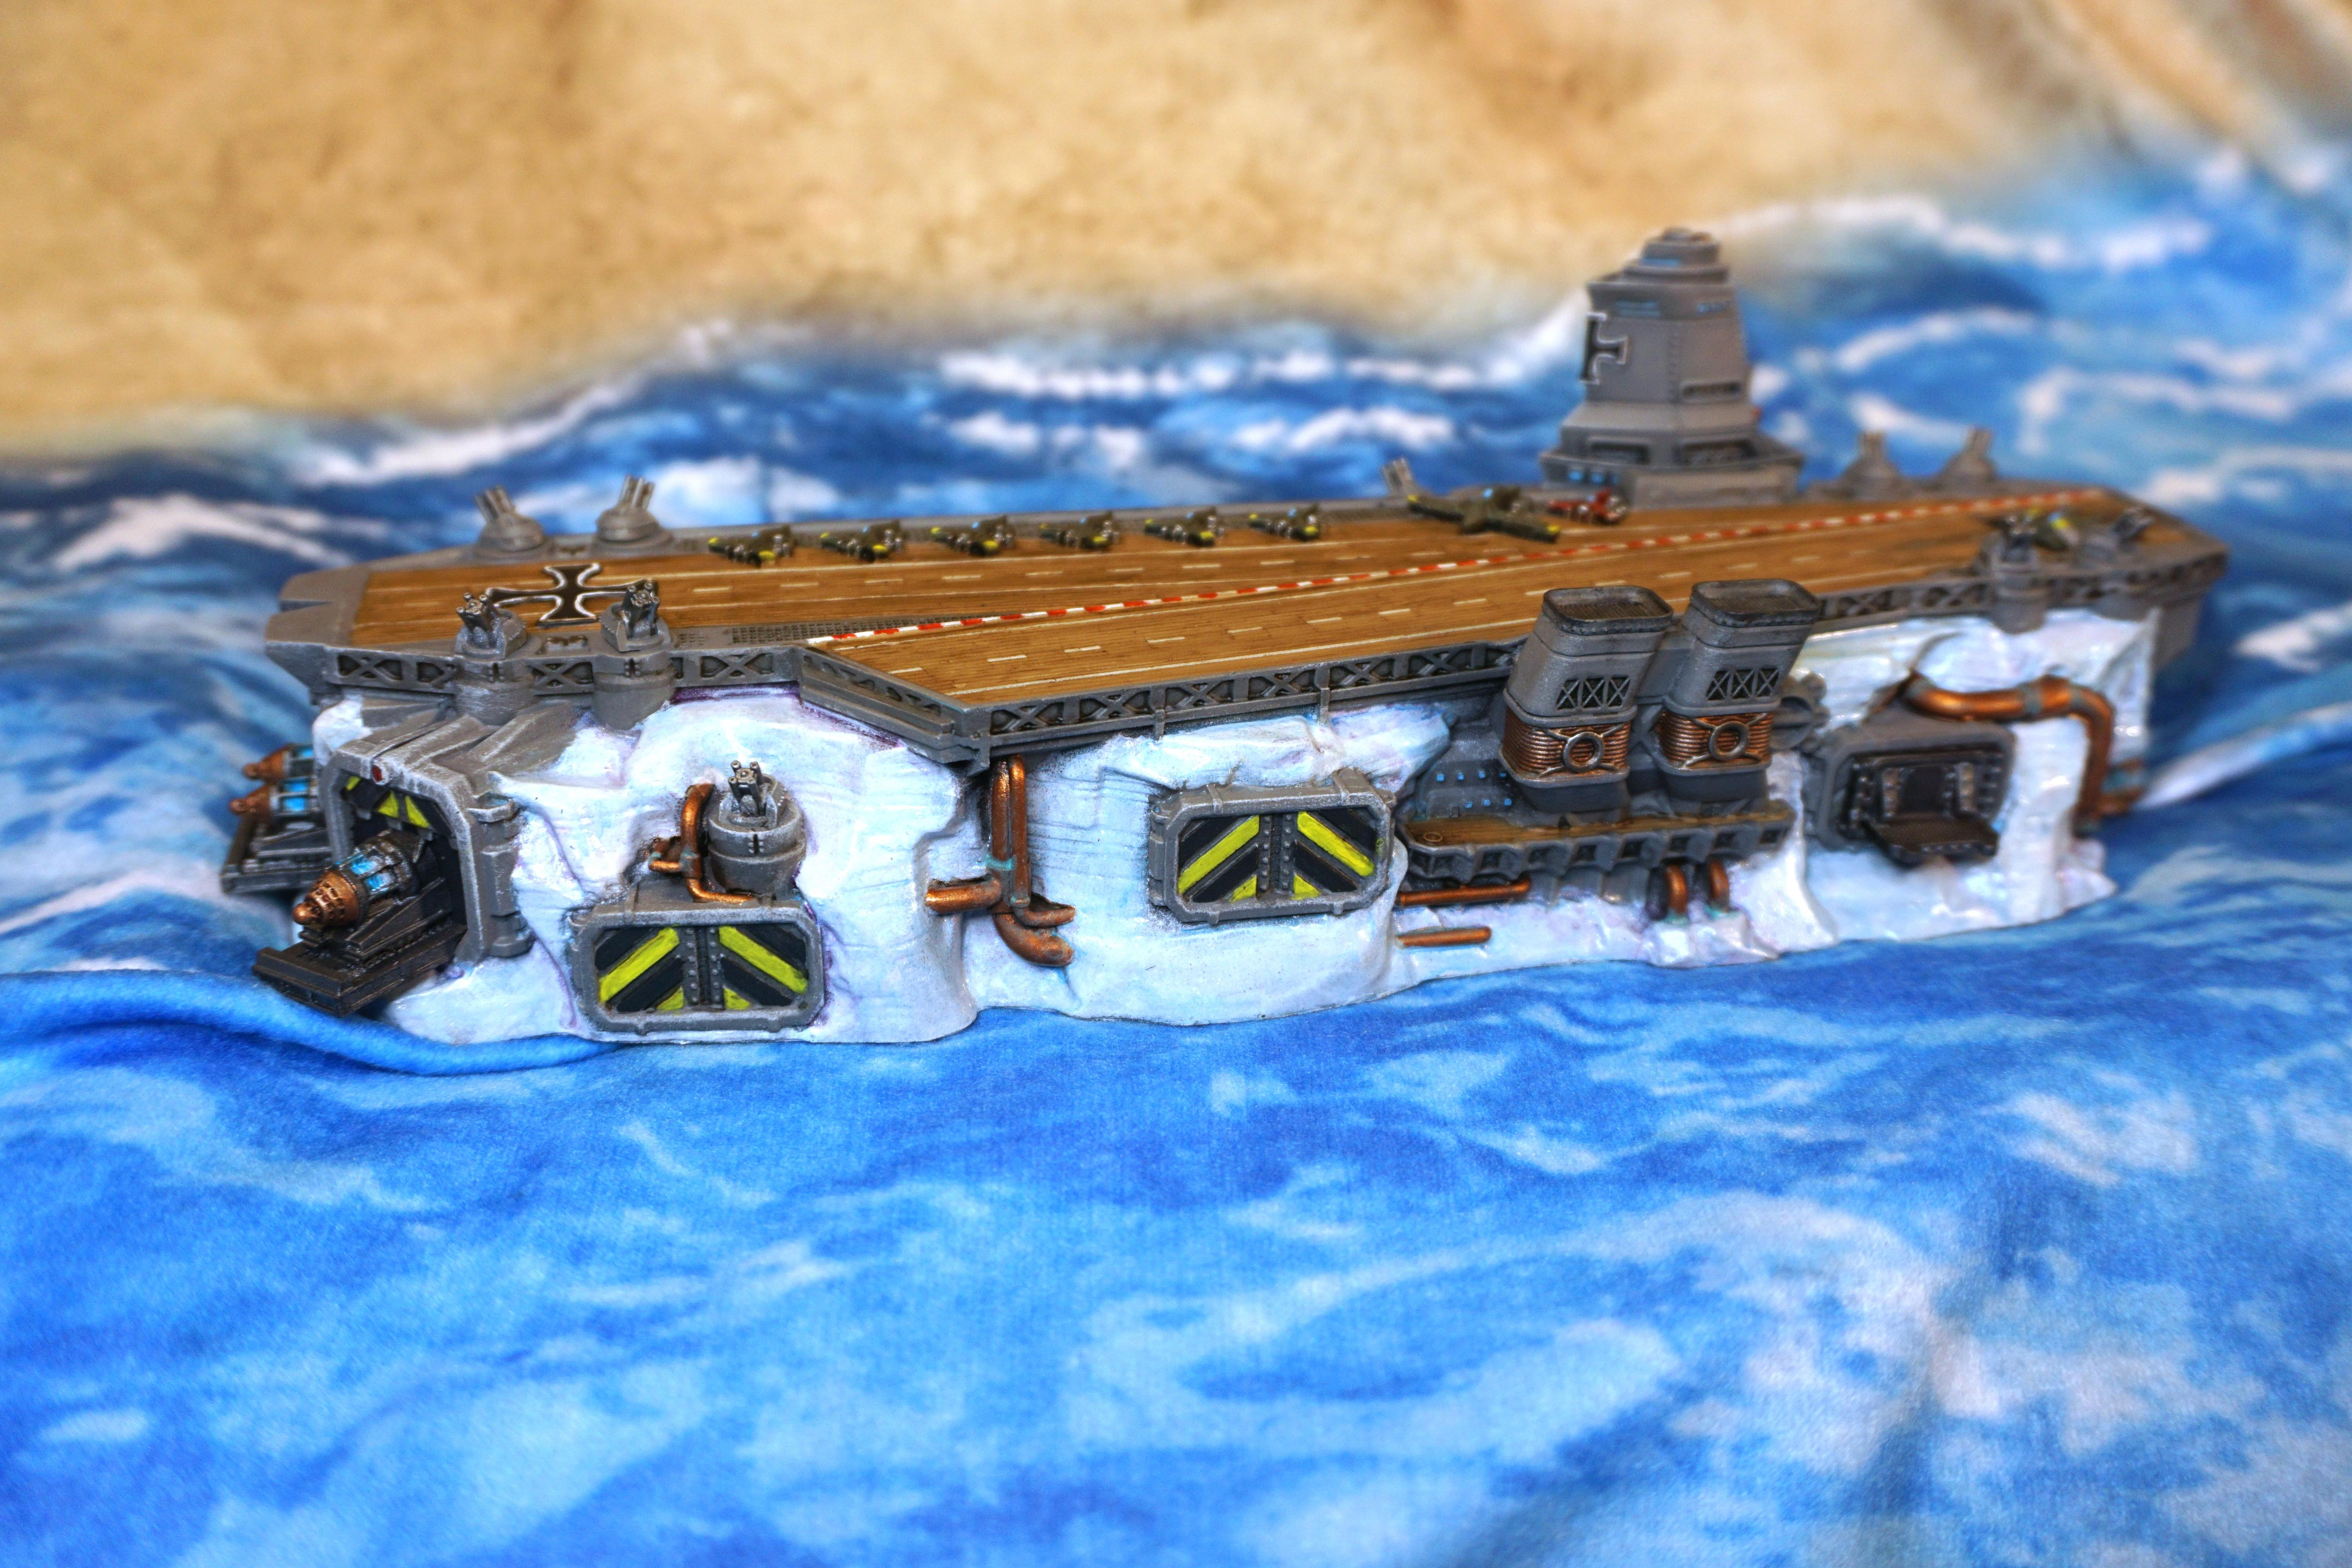 Aircraft Carrier, Dystopian Wars, Germans, Iceberg